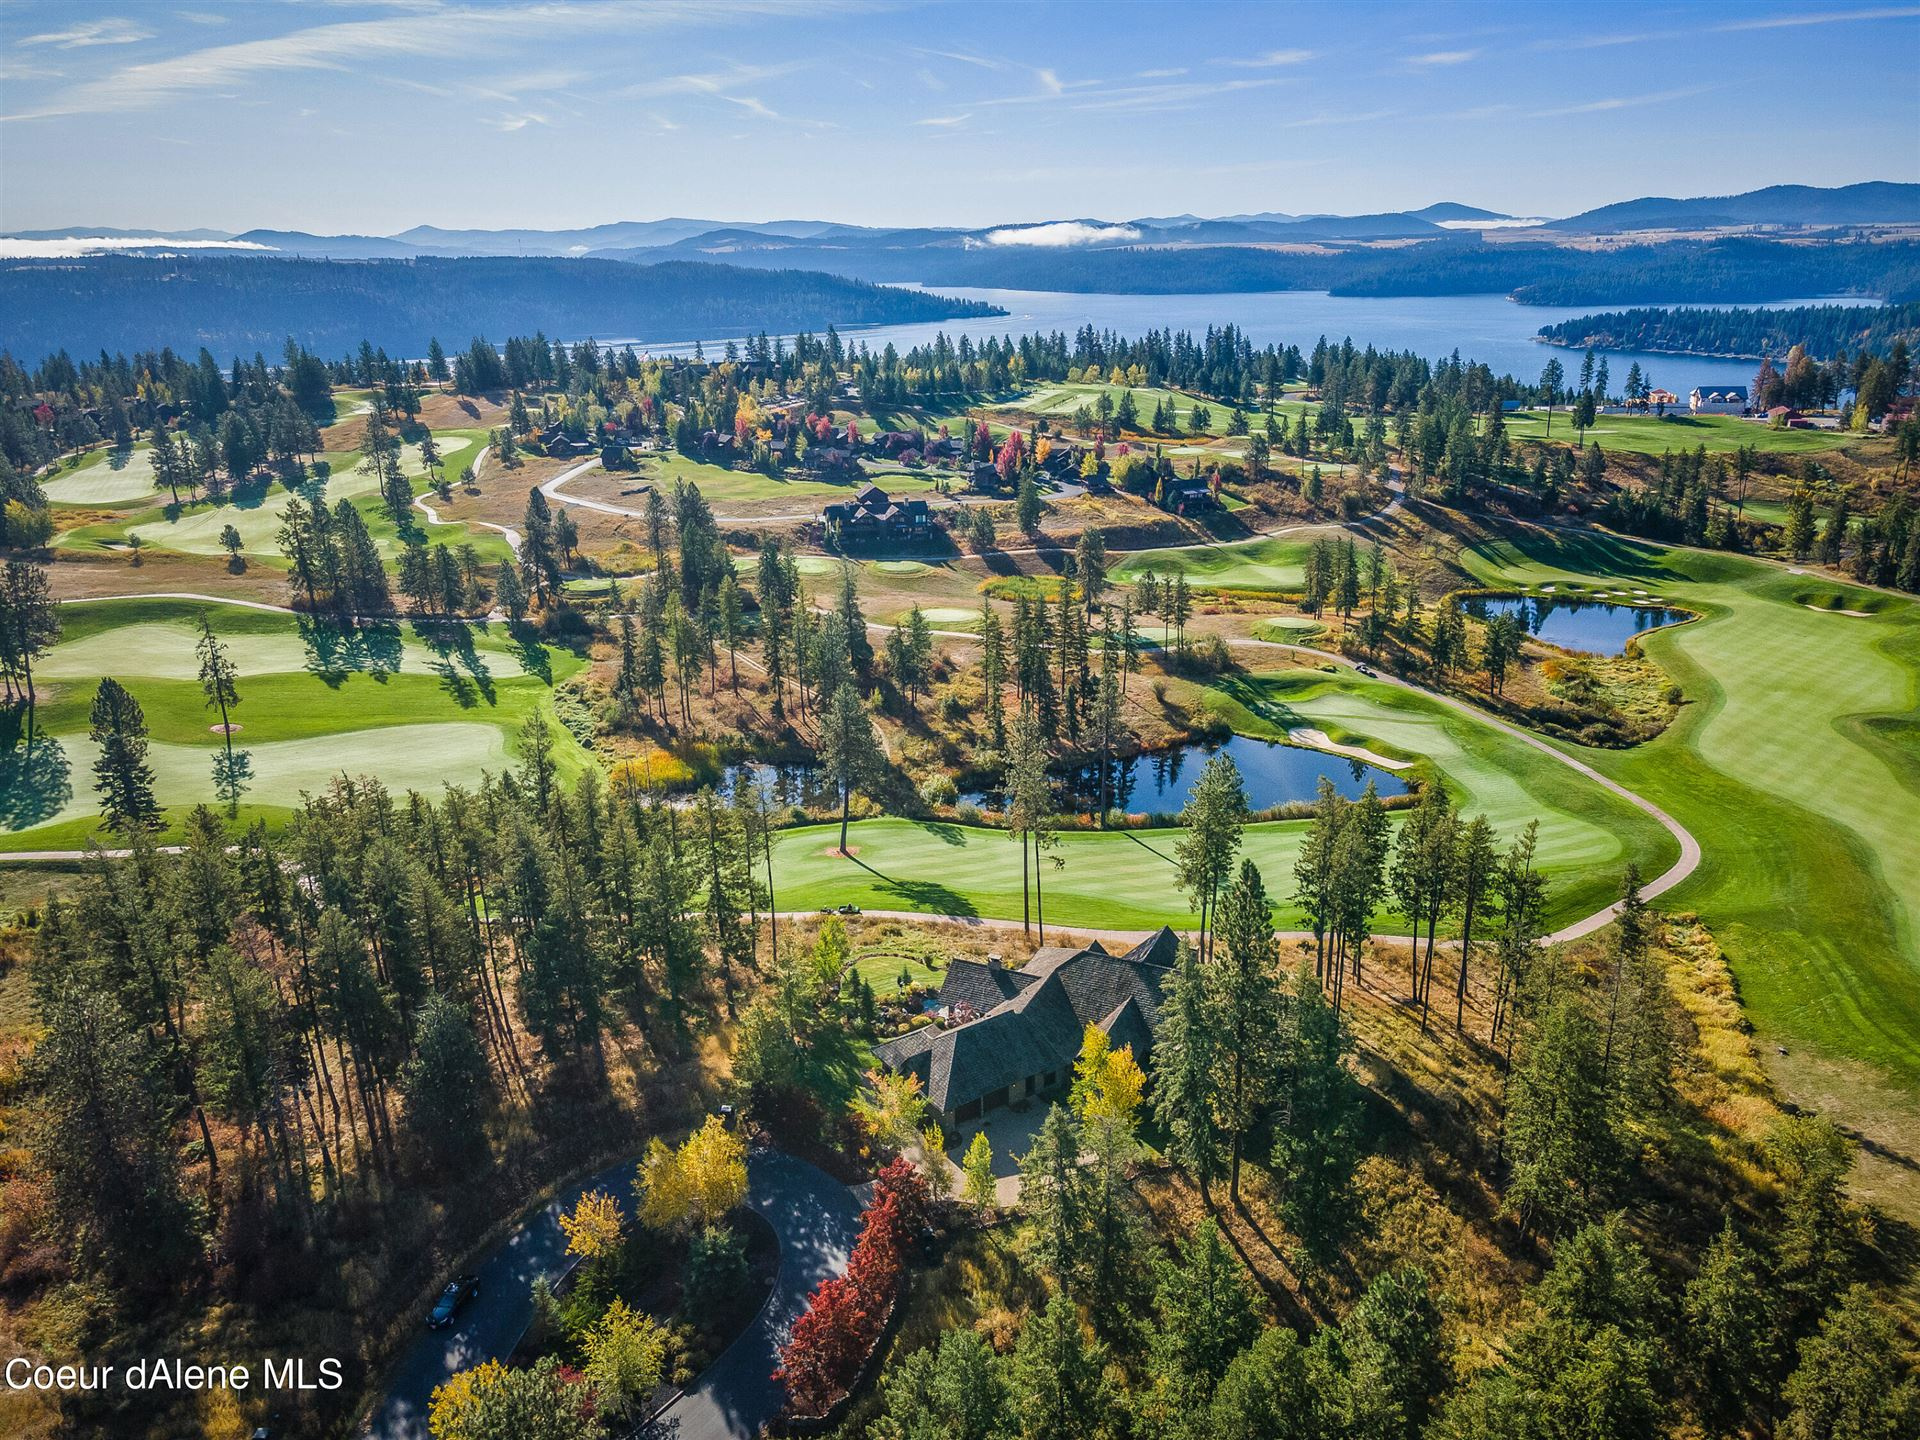 Photo of 16885 S SPINEL CT, Coeur dAlene, ID 83814 (MLS # 21-10095)